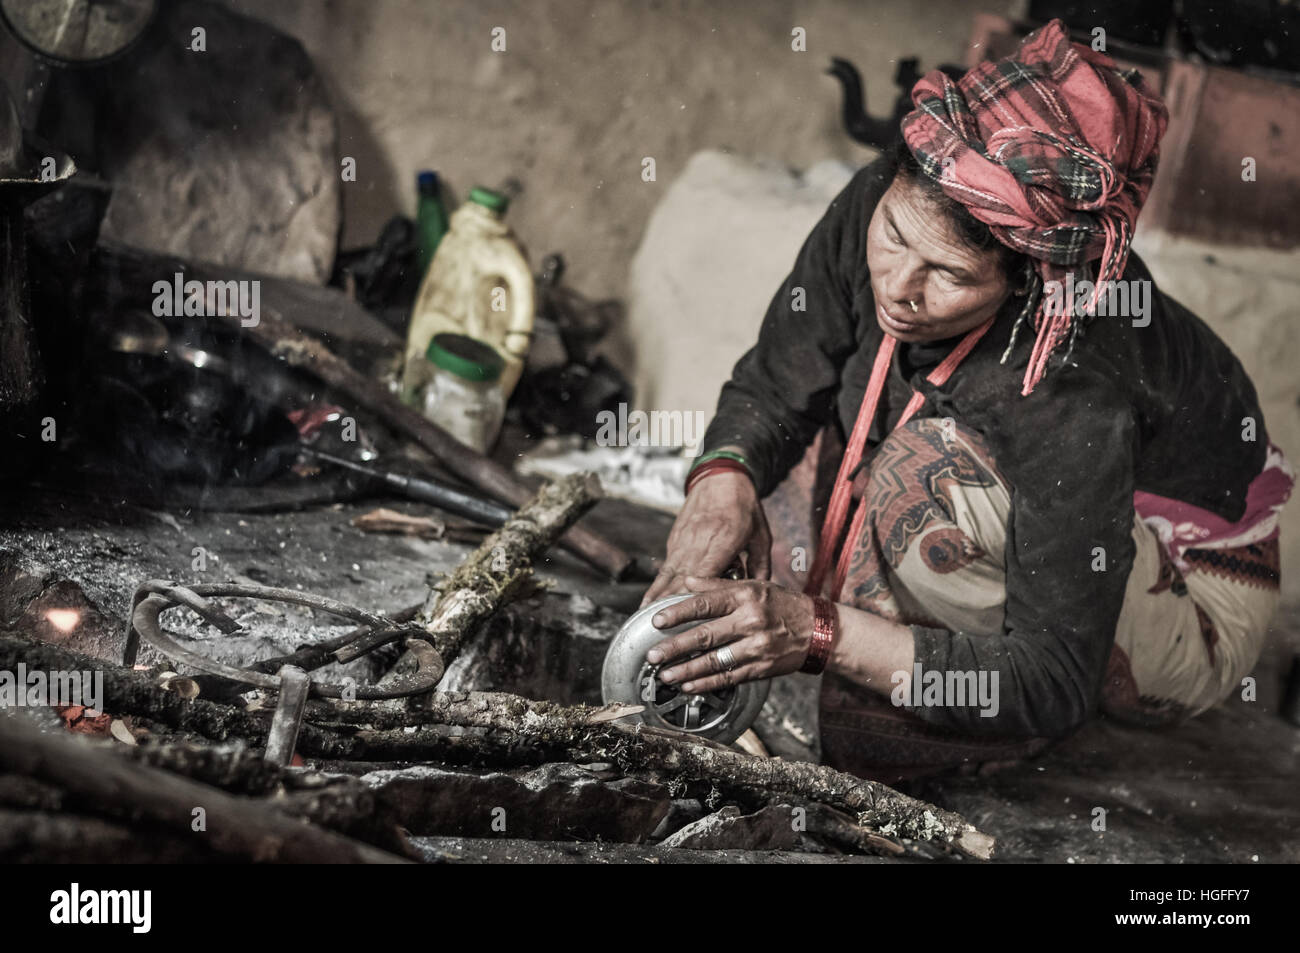 Dolpo, Nepal - circa May 2012: Native woman with red headcloth kneels next to wooden branches and works during preparation - Stock Image